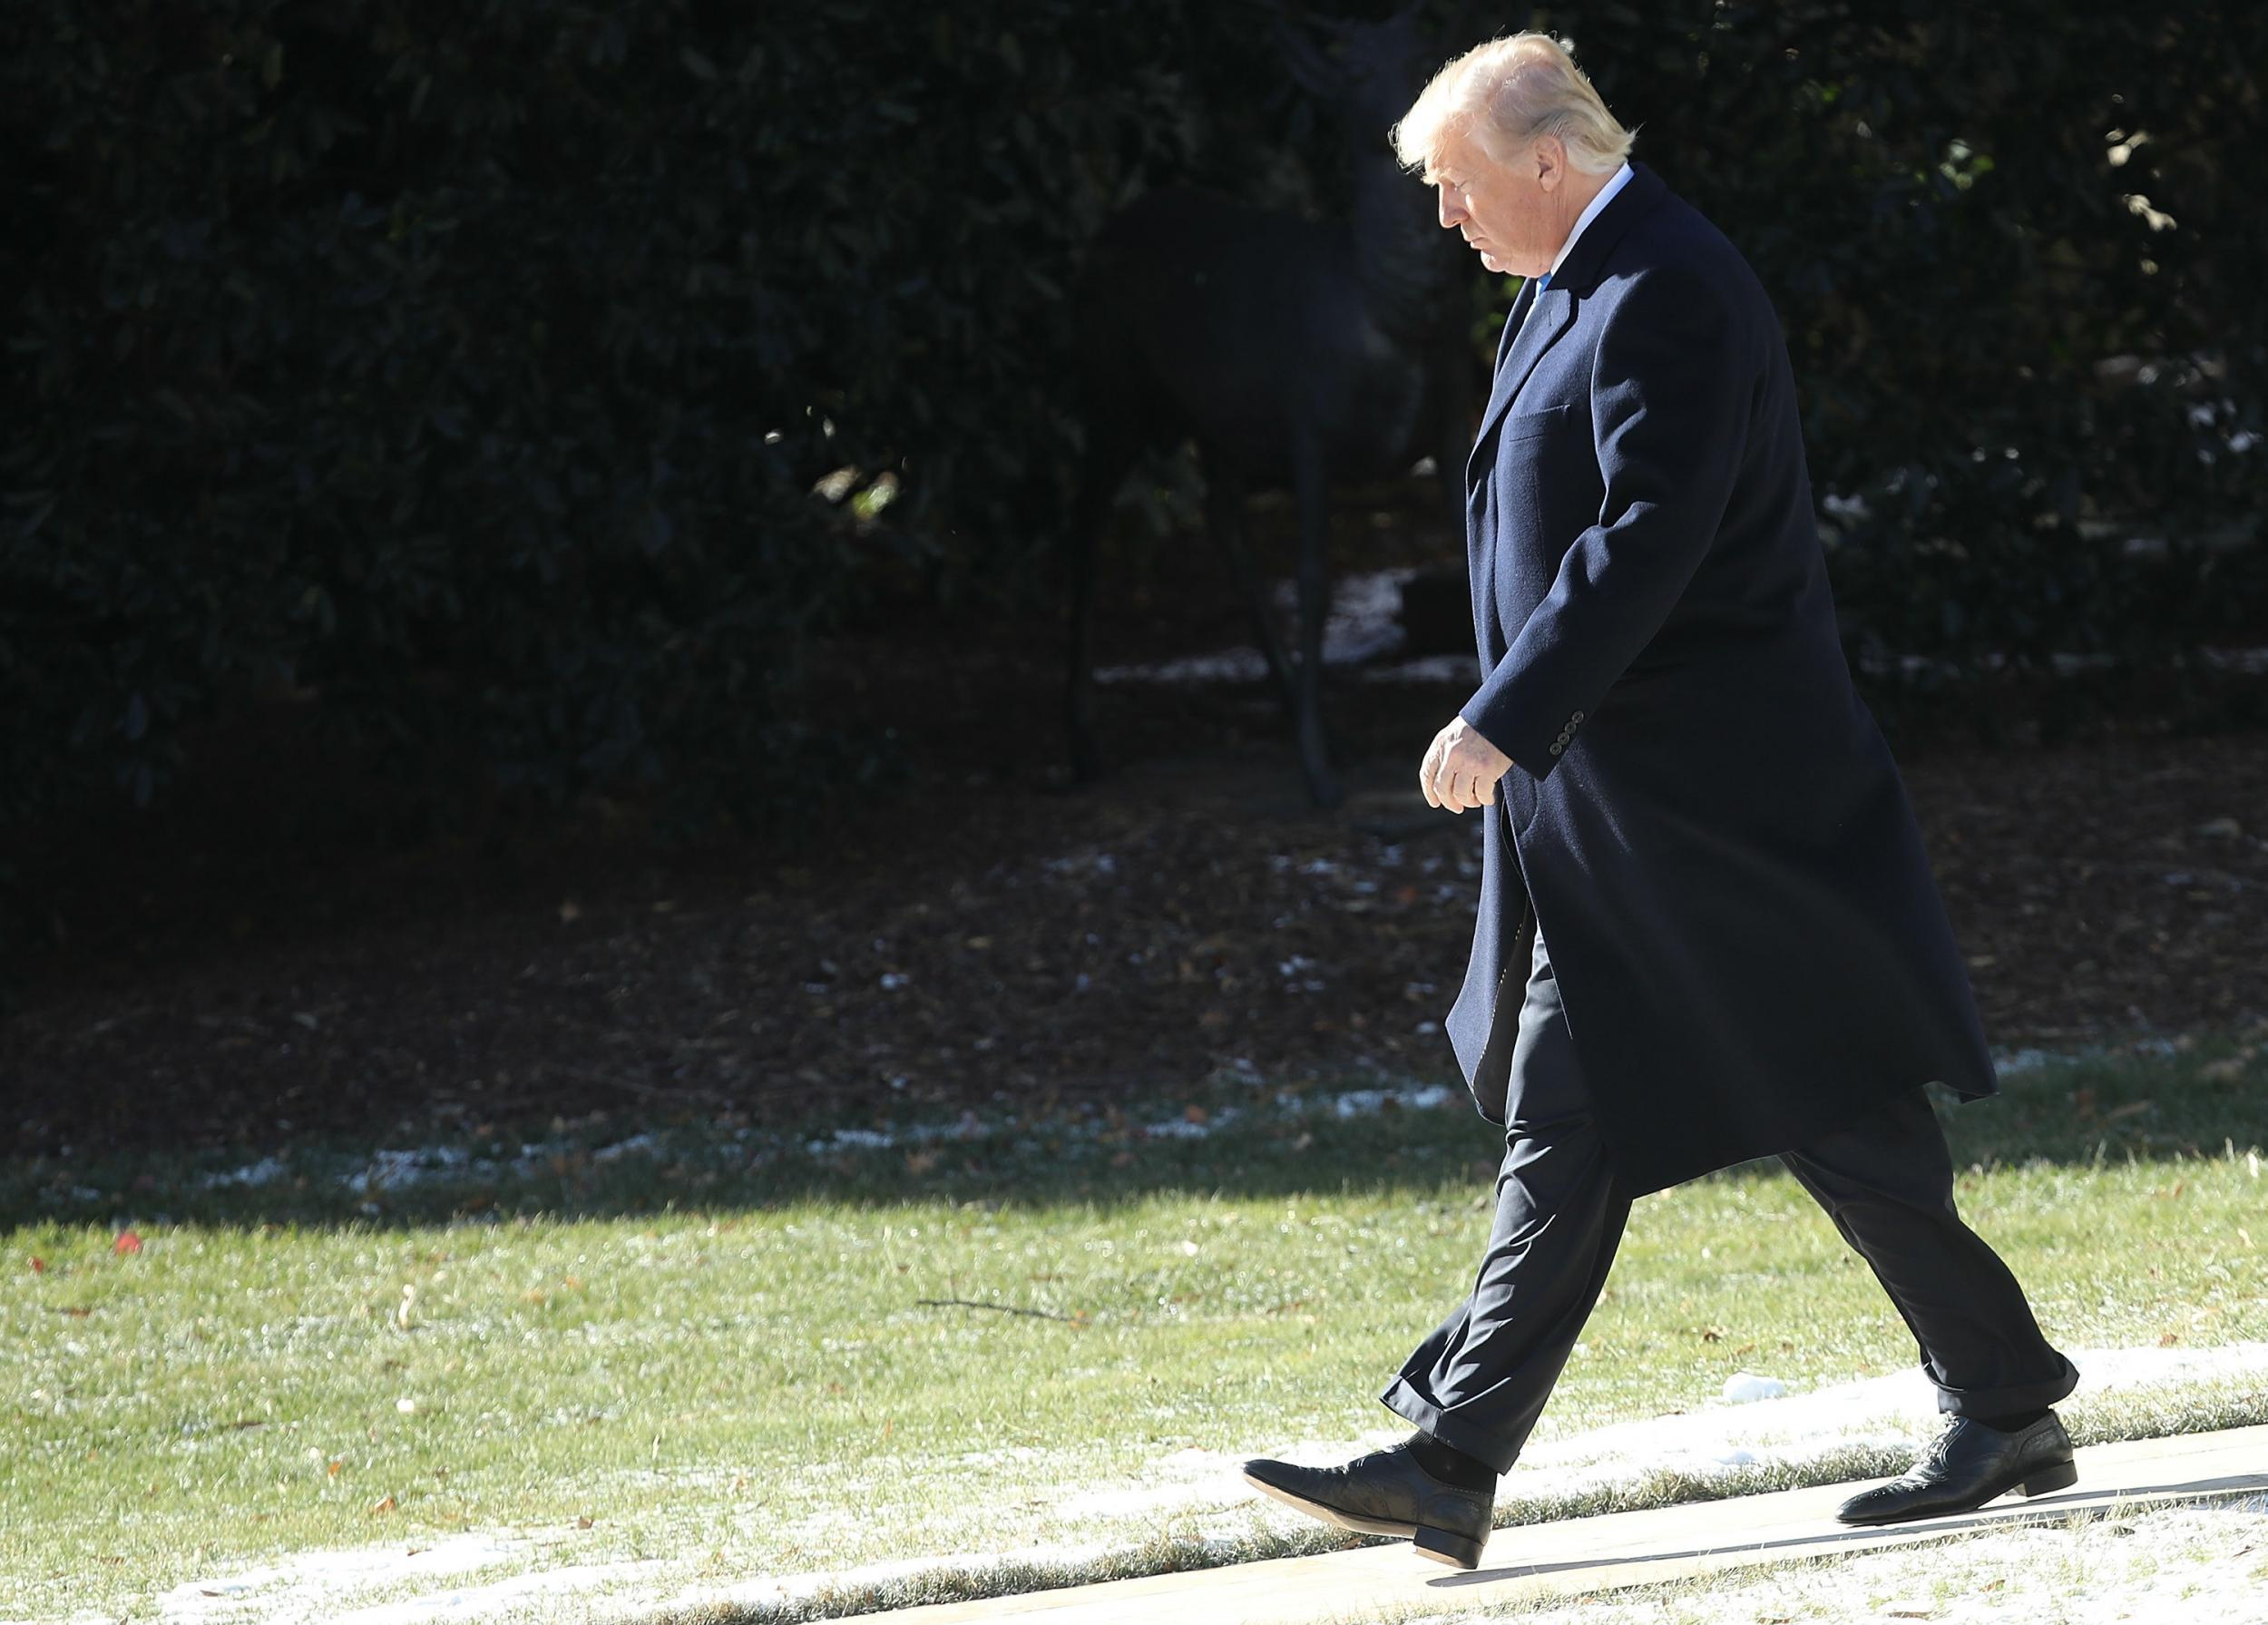 Trump retreats to the woods of Camp David with Wolff on his tail